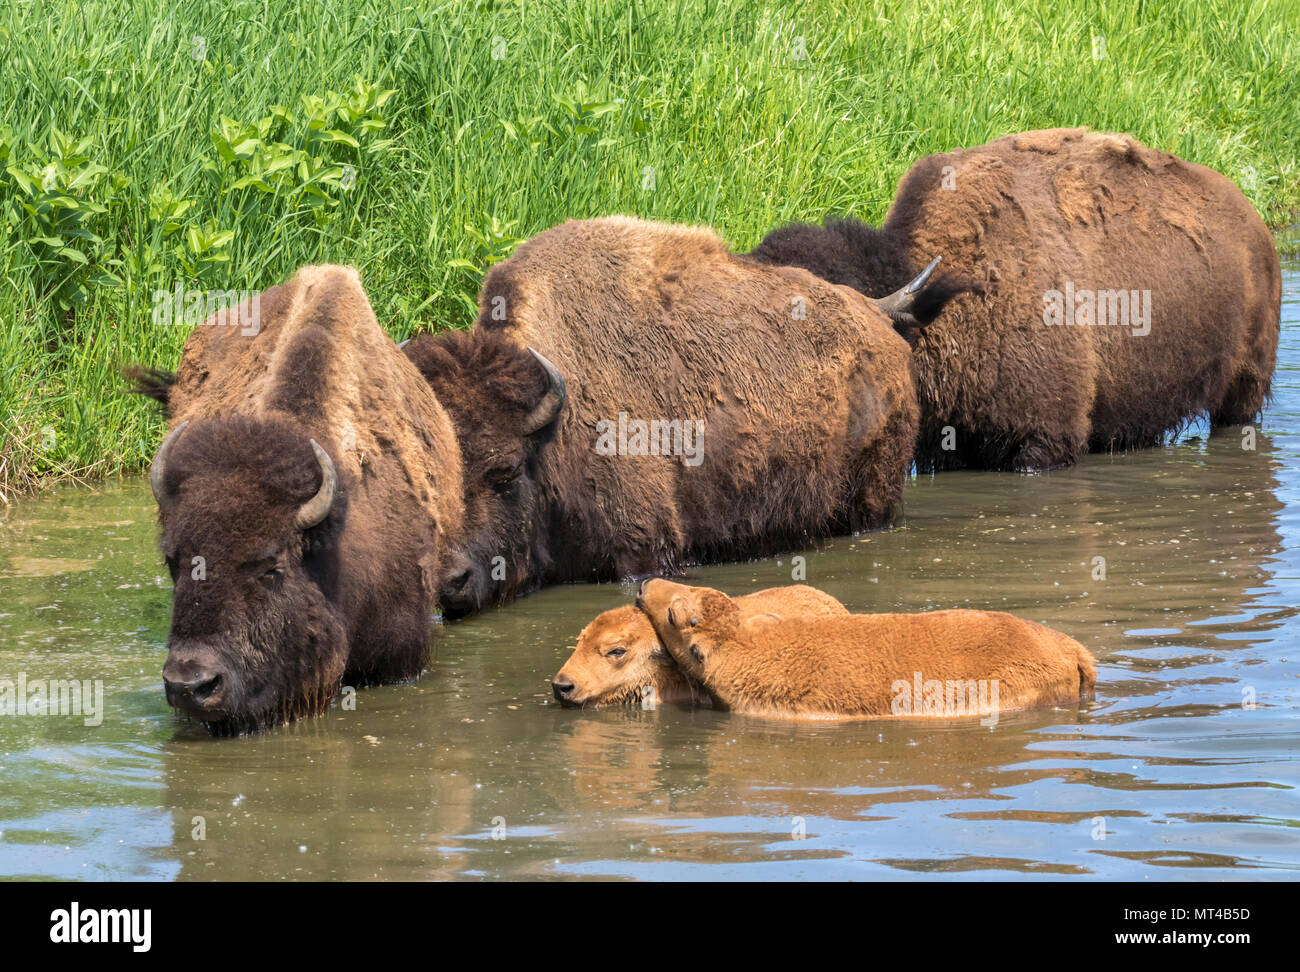 A herd of American bison (Bison bison) bathing in a lake during hot summer day, Iowa, USA. - Stock Image